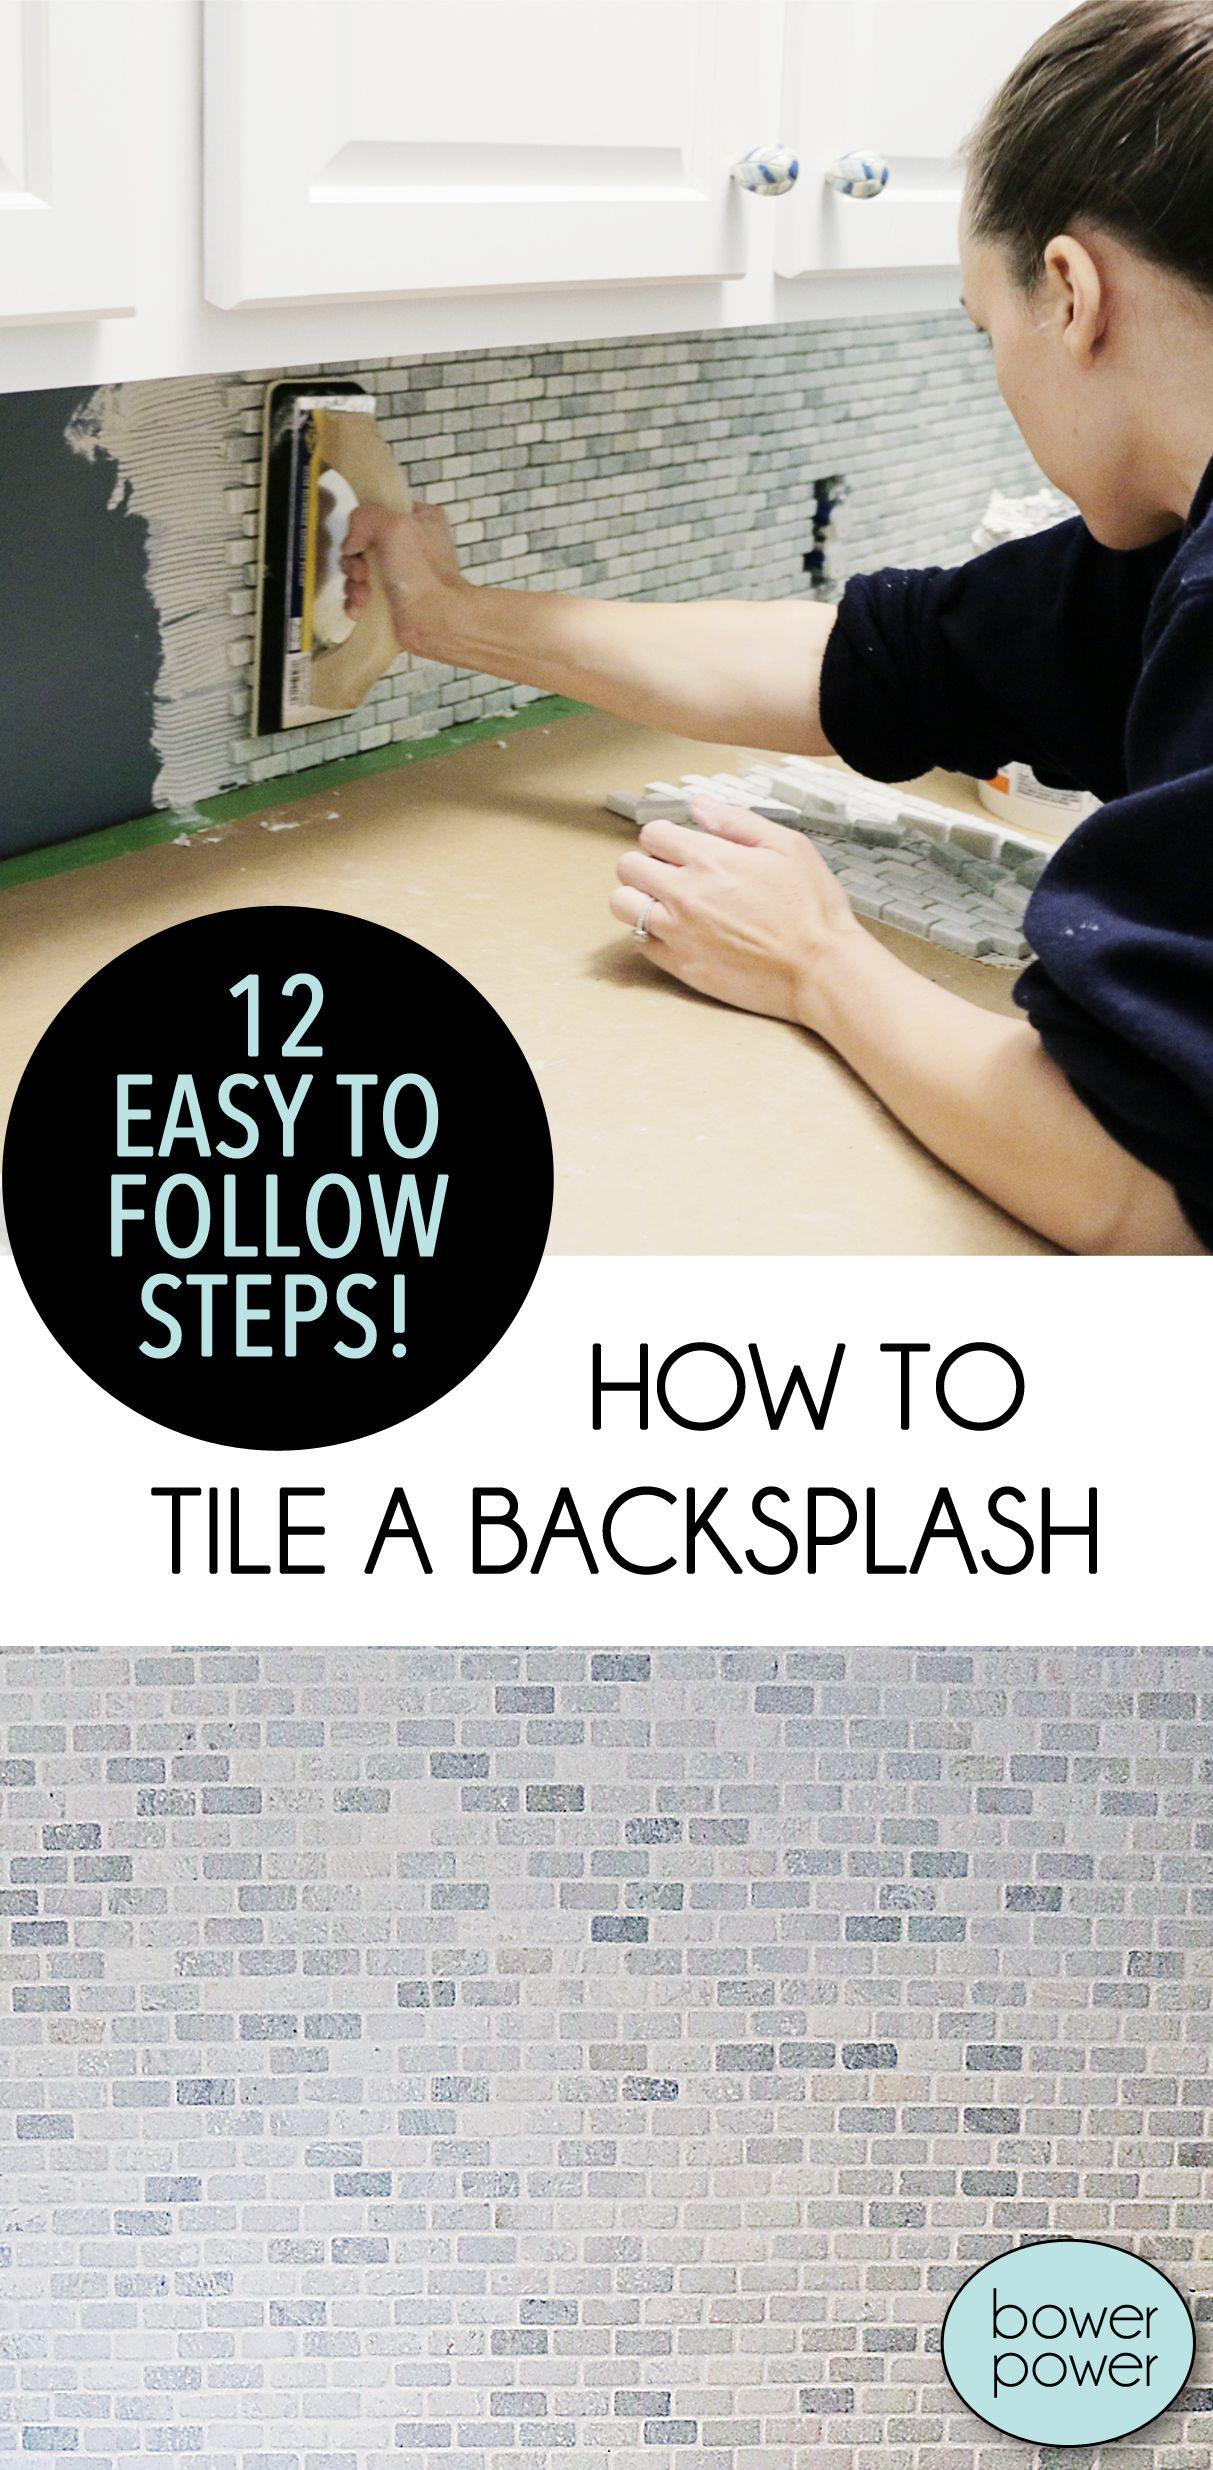 How To Tile A Backsplash | Diy home repair, Easy home decor ... H O Abbreviation House Design on house style, house desings, house layout, house types, house print, house schematics, house cutout, house plans, house drawing, house designing, house map, house logo, house interiors, house paint, house template, house rooms, house blueprints, house color, house exterior, house diagram,